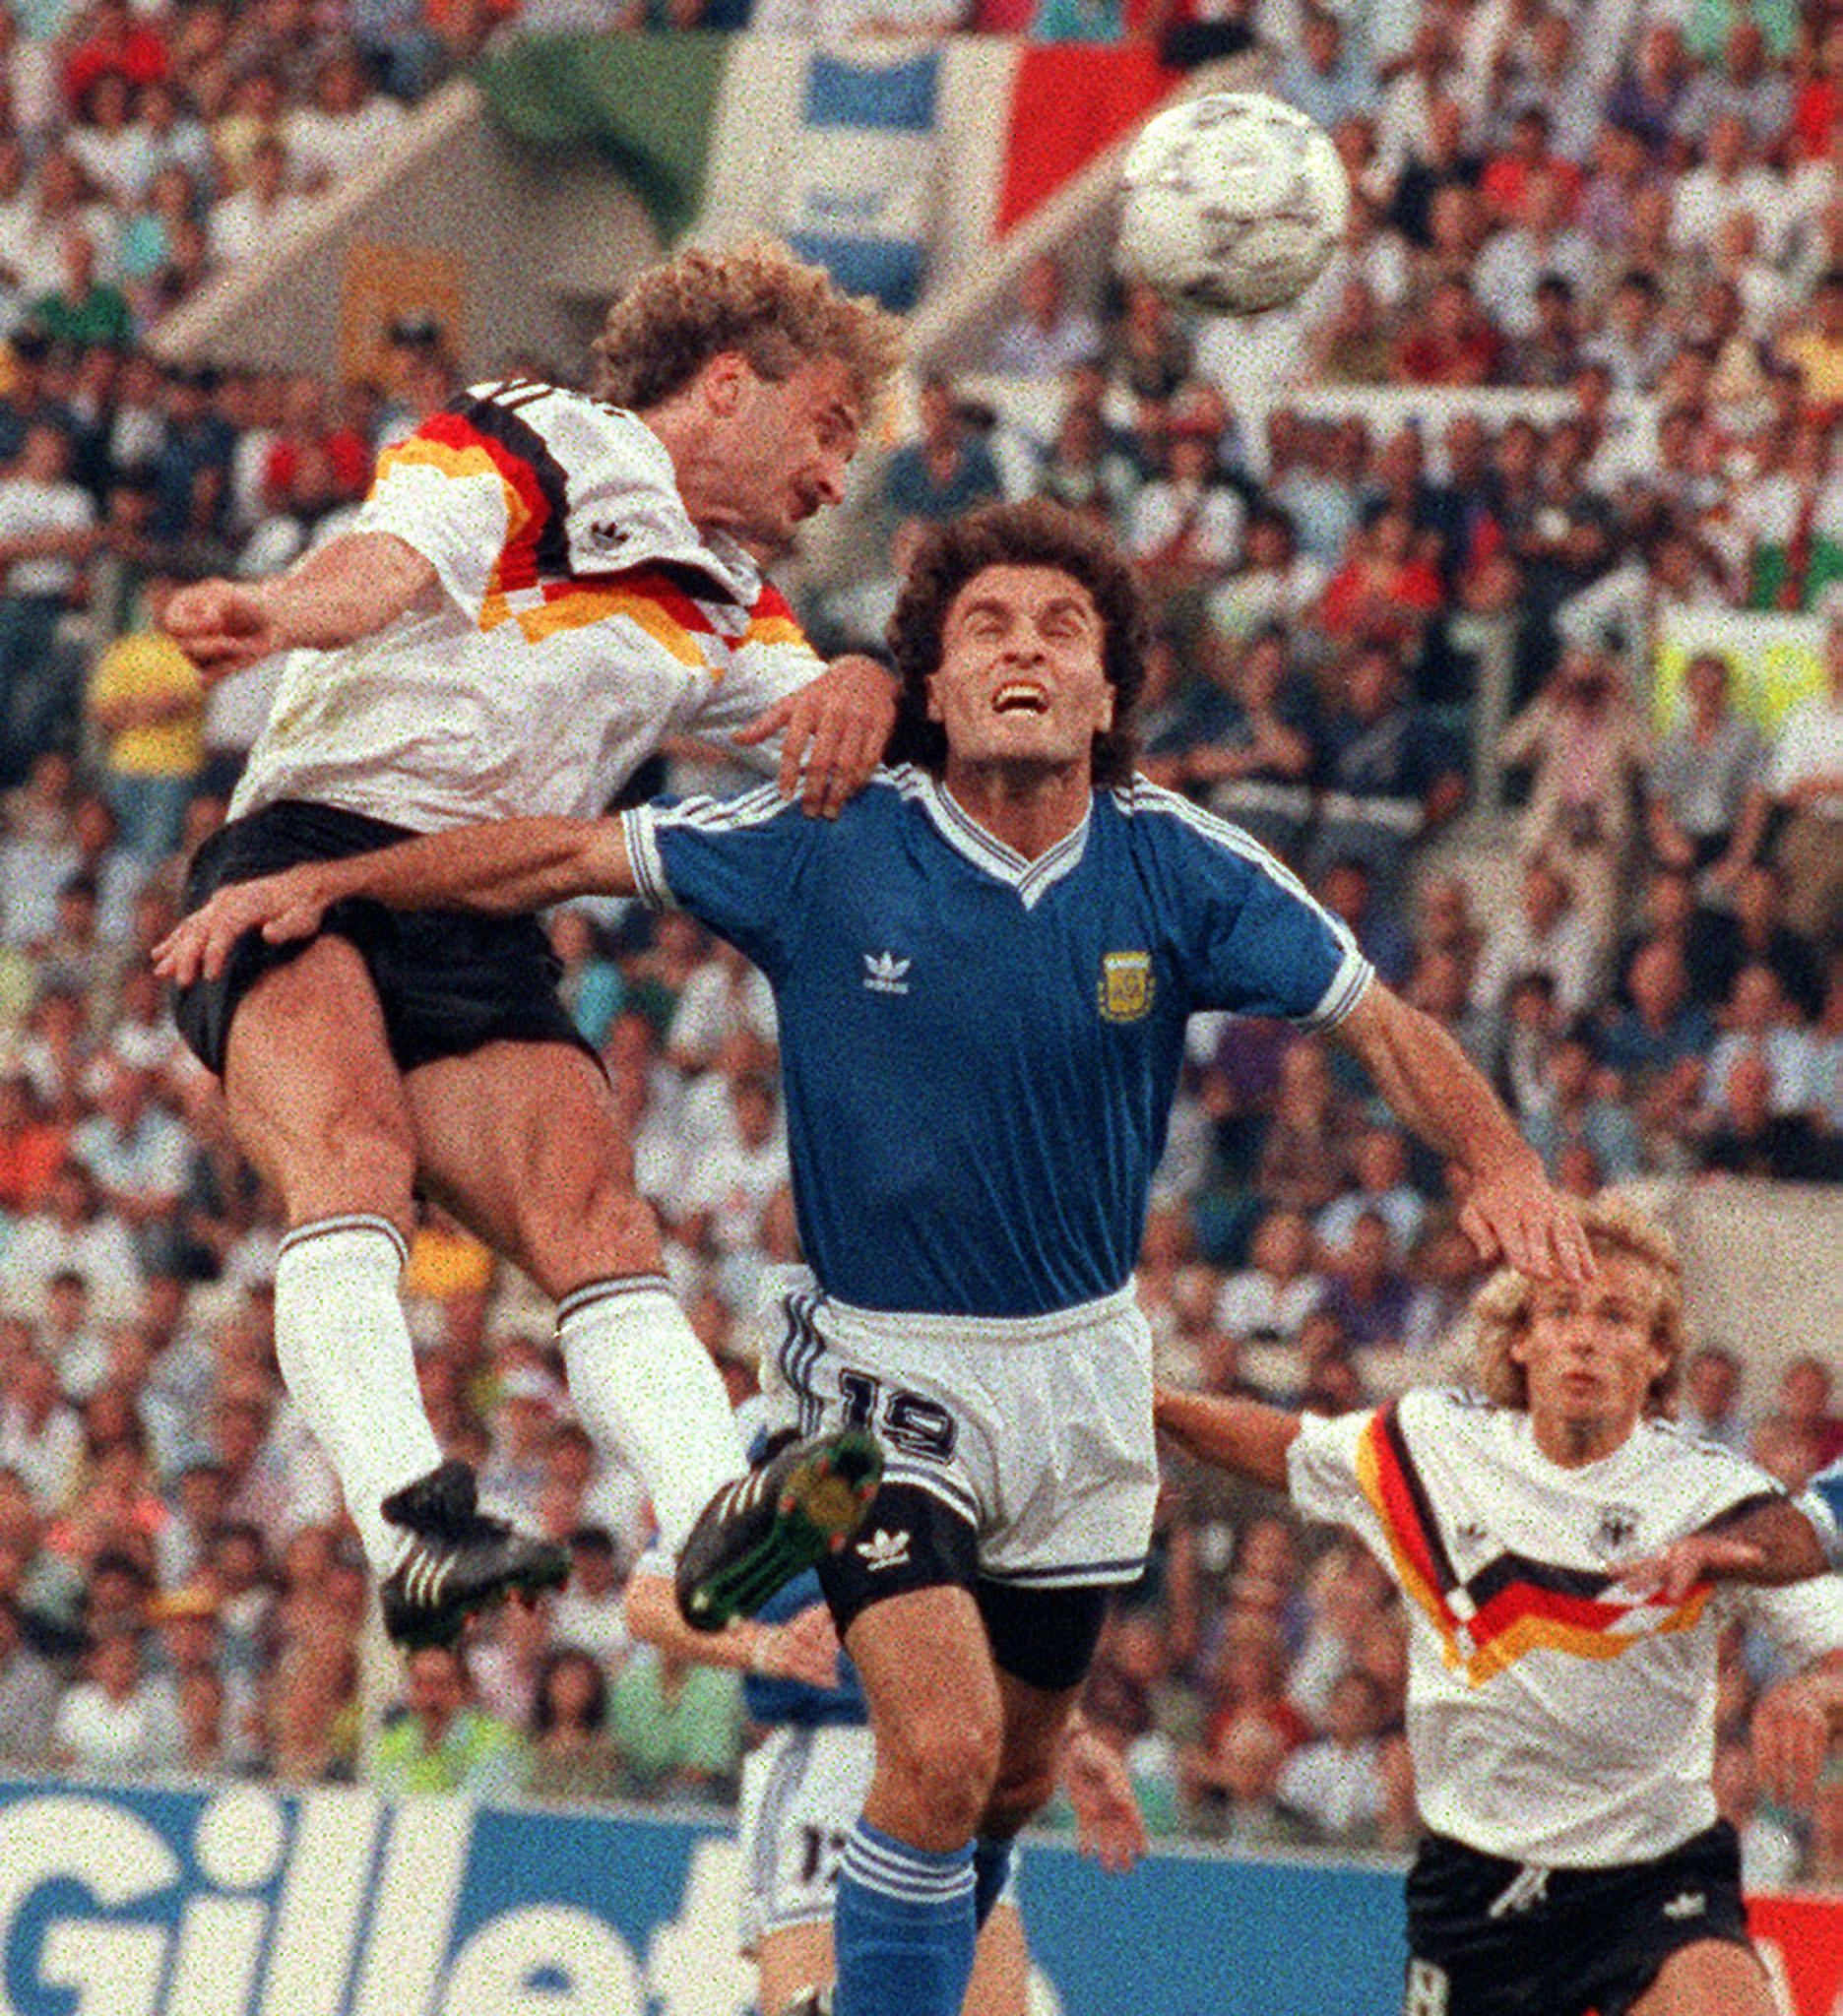 West German forward Rudi Voeller heads the ball over Argentinian defender Oscar Ruggeri as forward Juergen Klinsmann looks on during the 1990 World Cup final between West Germany and Argentina July 8, 1990 in Rome.